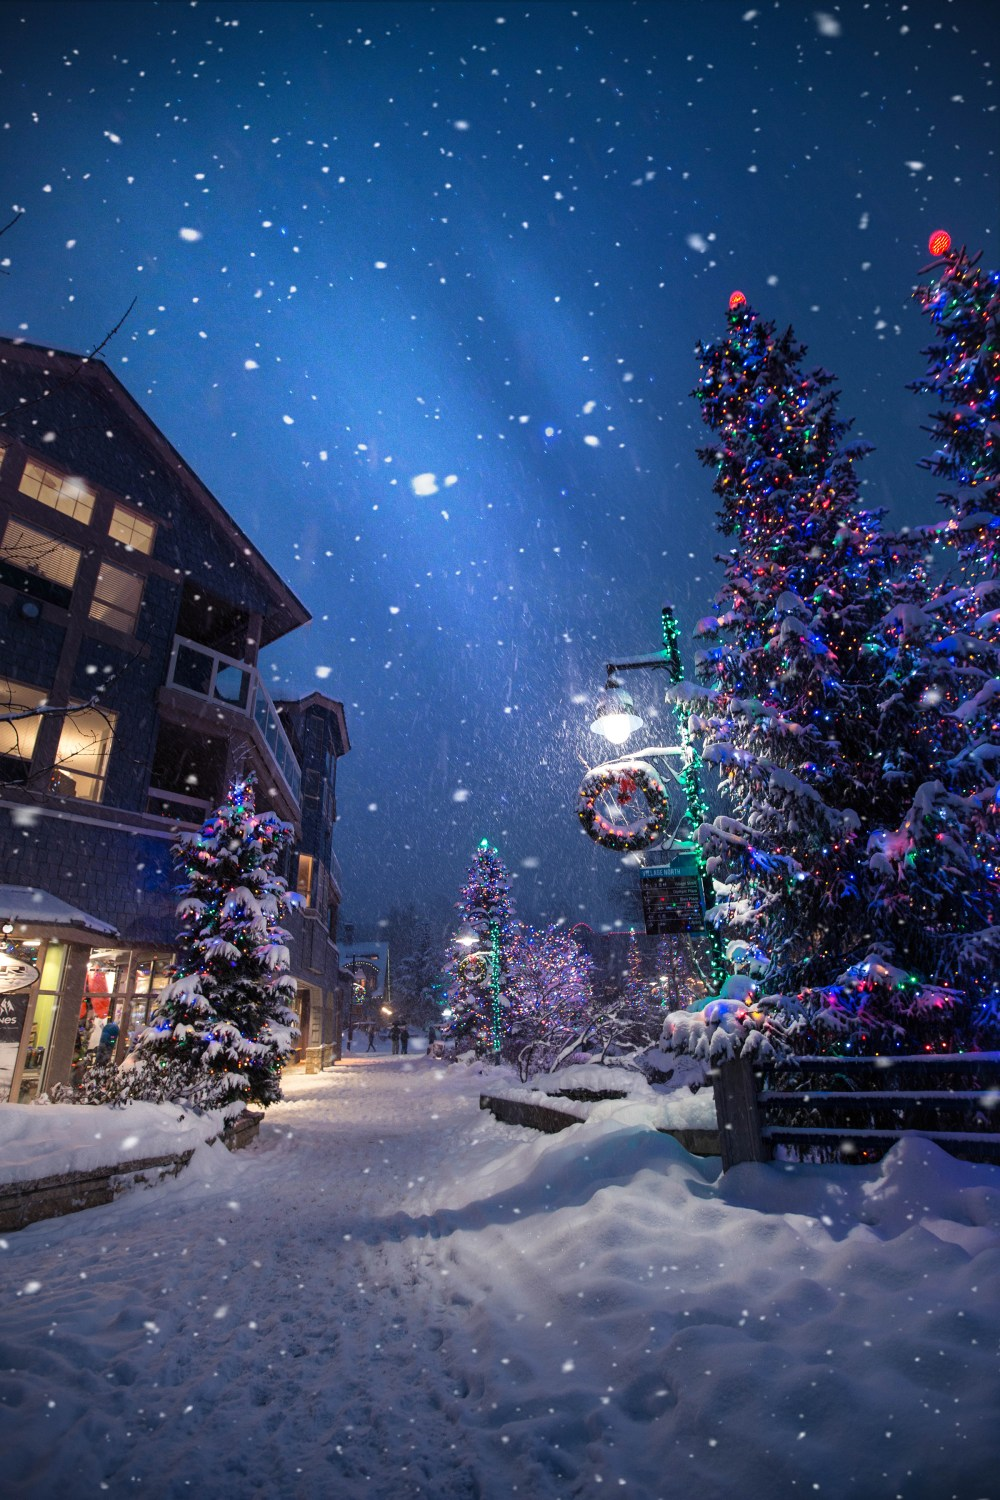 Falling Snow Live Wallpaper For Iphone Magic In The Whistler Village Photo By Roberto Nickson G